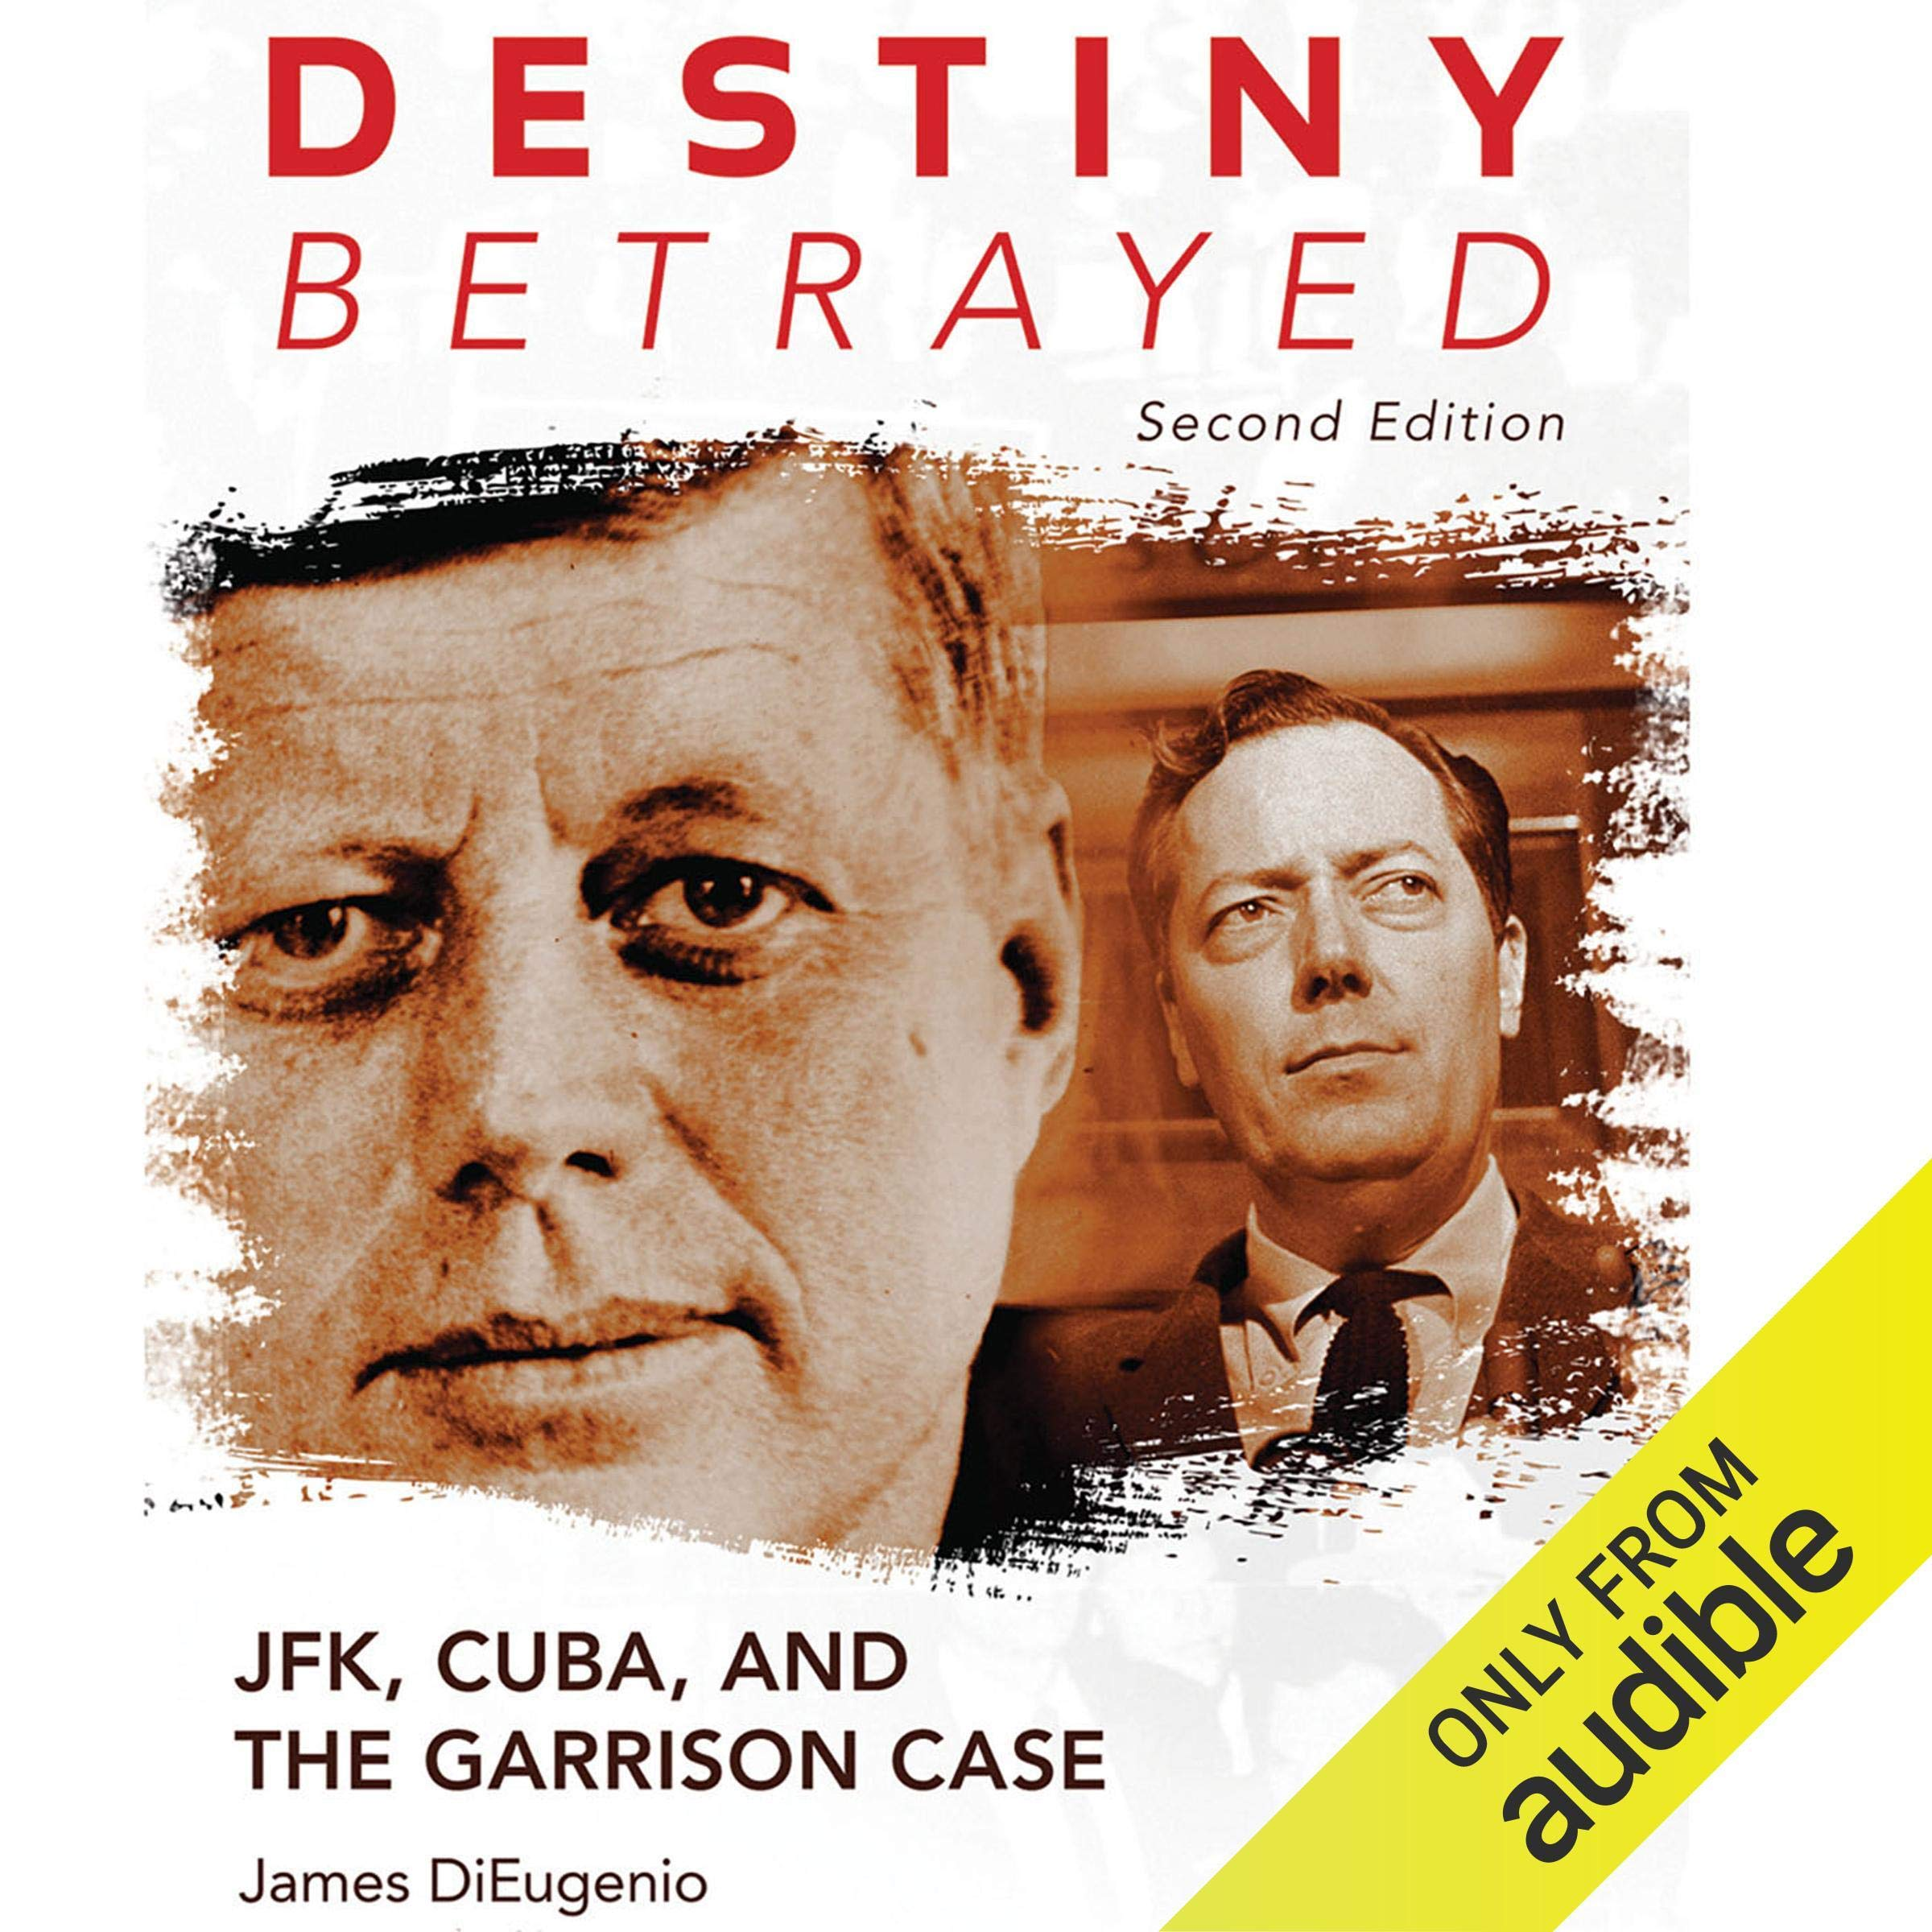 Image OfDestiny Betrayed, Second Edition: JFK, Cuba, And The Garrison Case